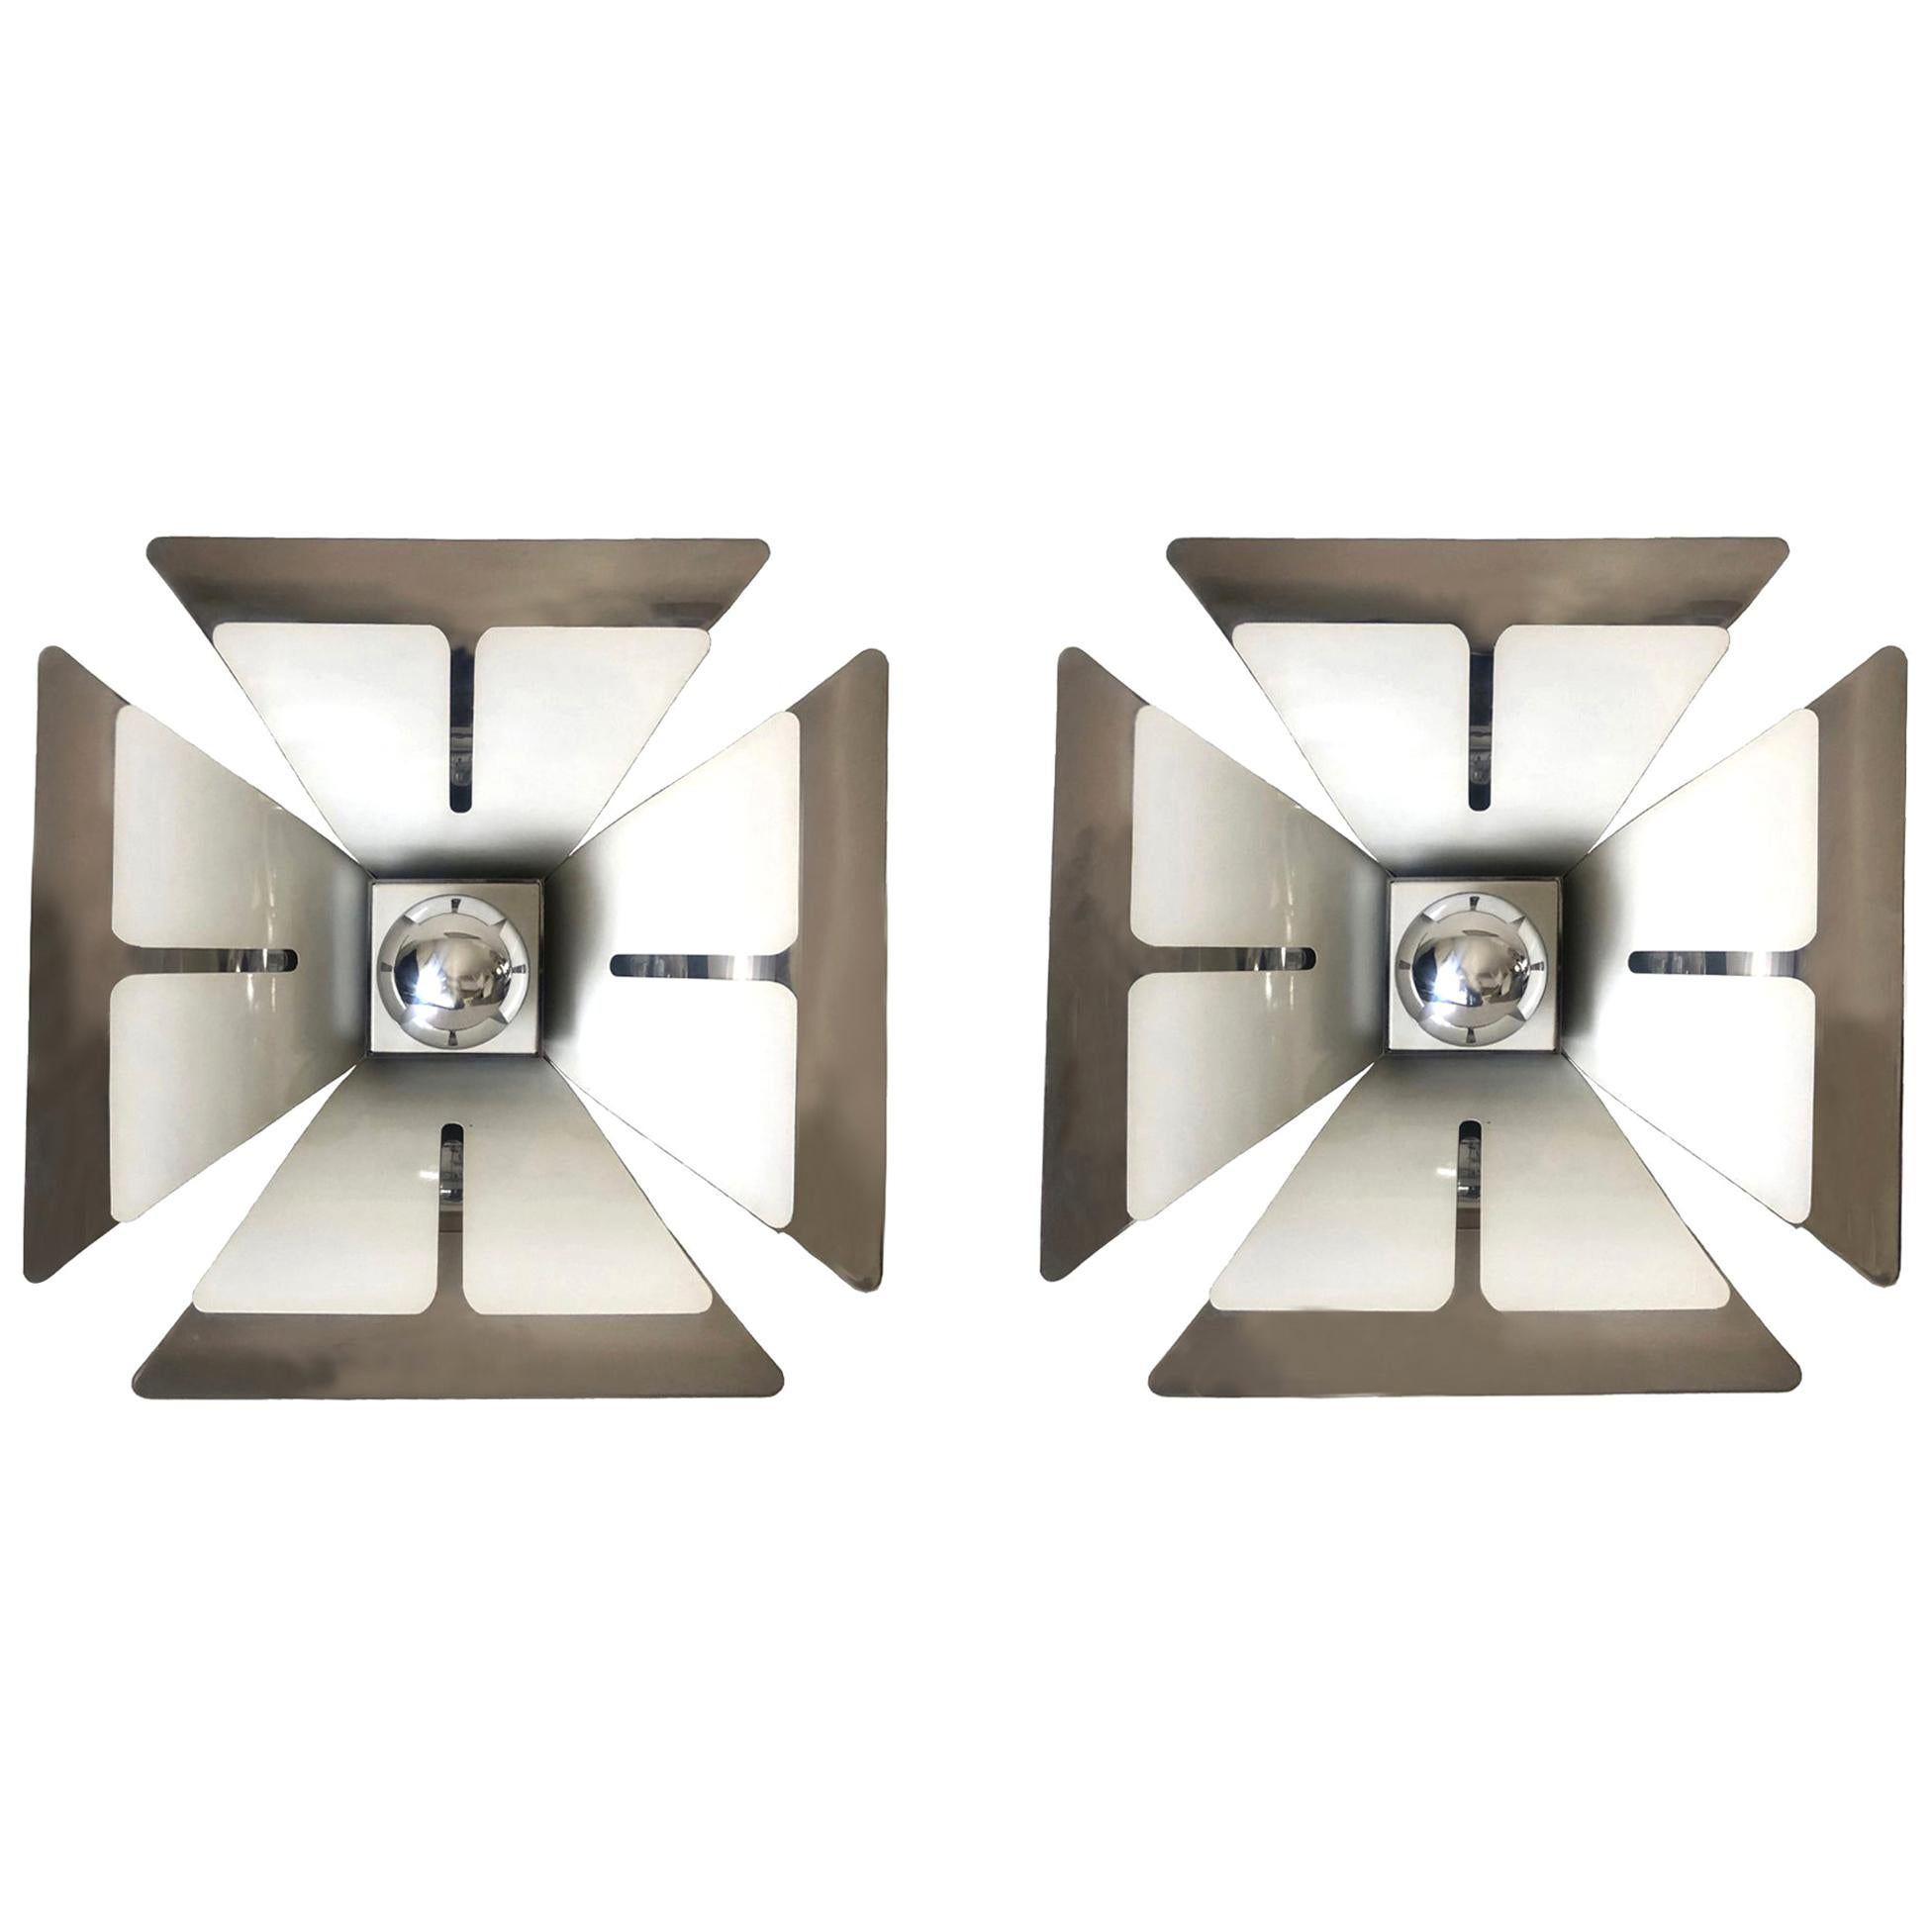 Pair of Midcentury Italian Metal Flushmounts by Reggiani, 1970s